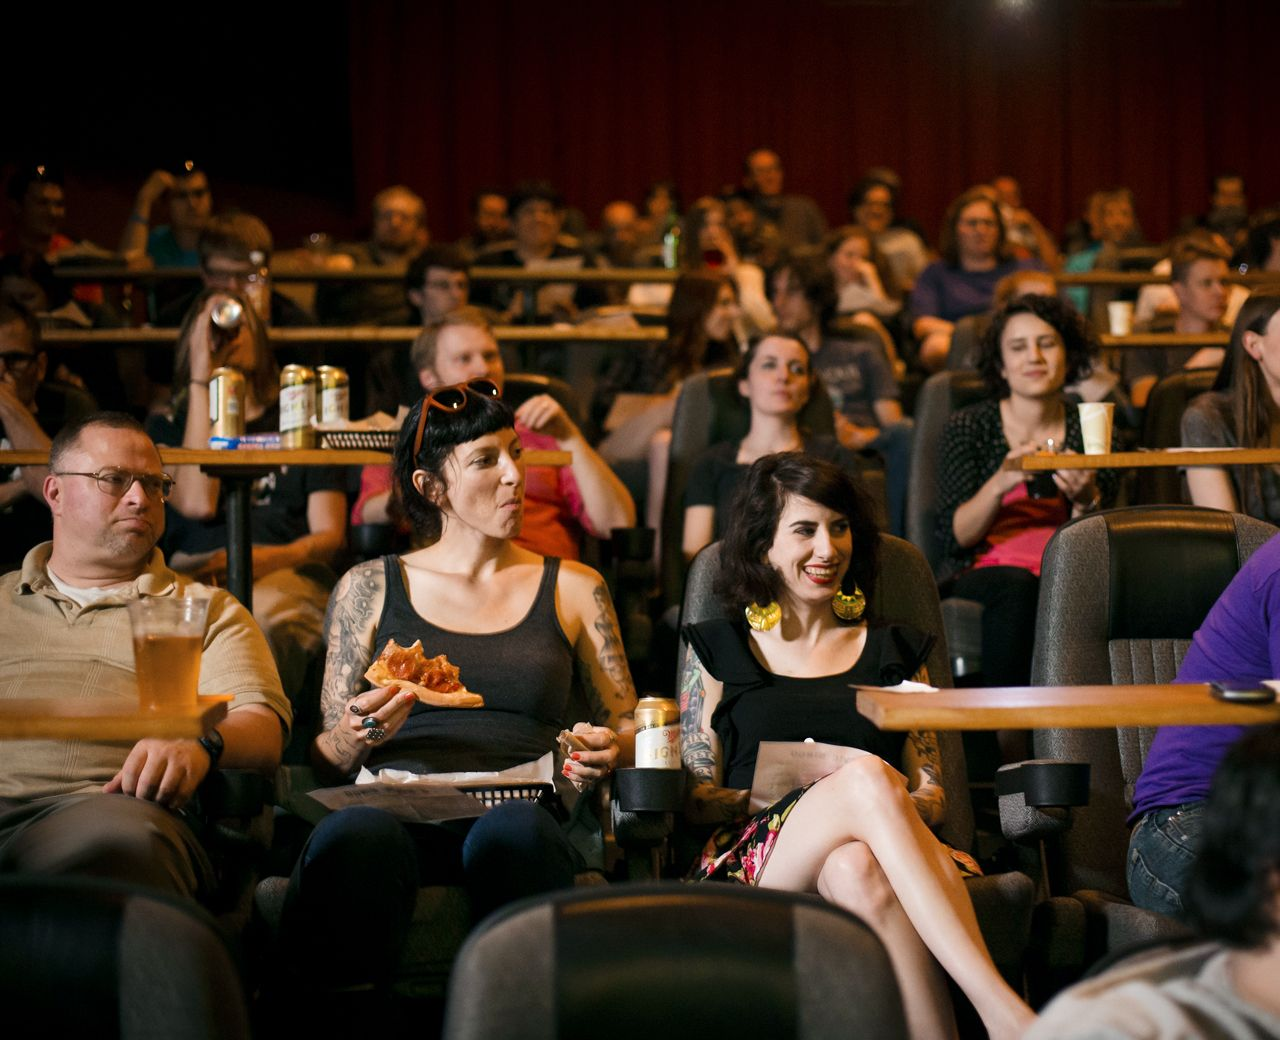 Brew n view movie theaters that serve beer with